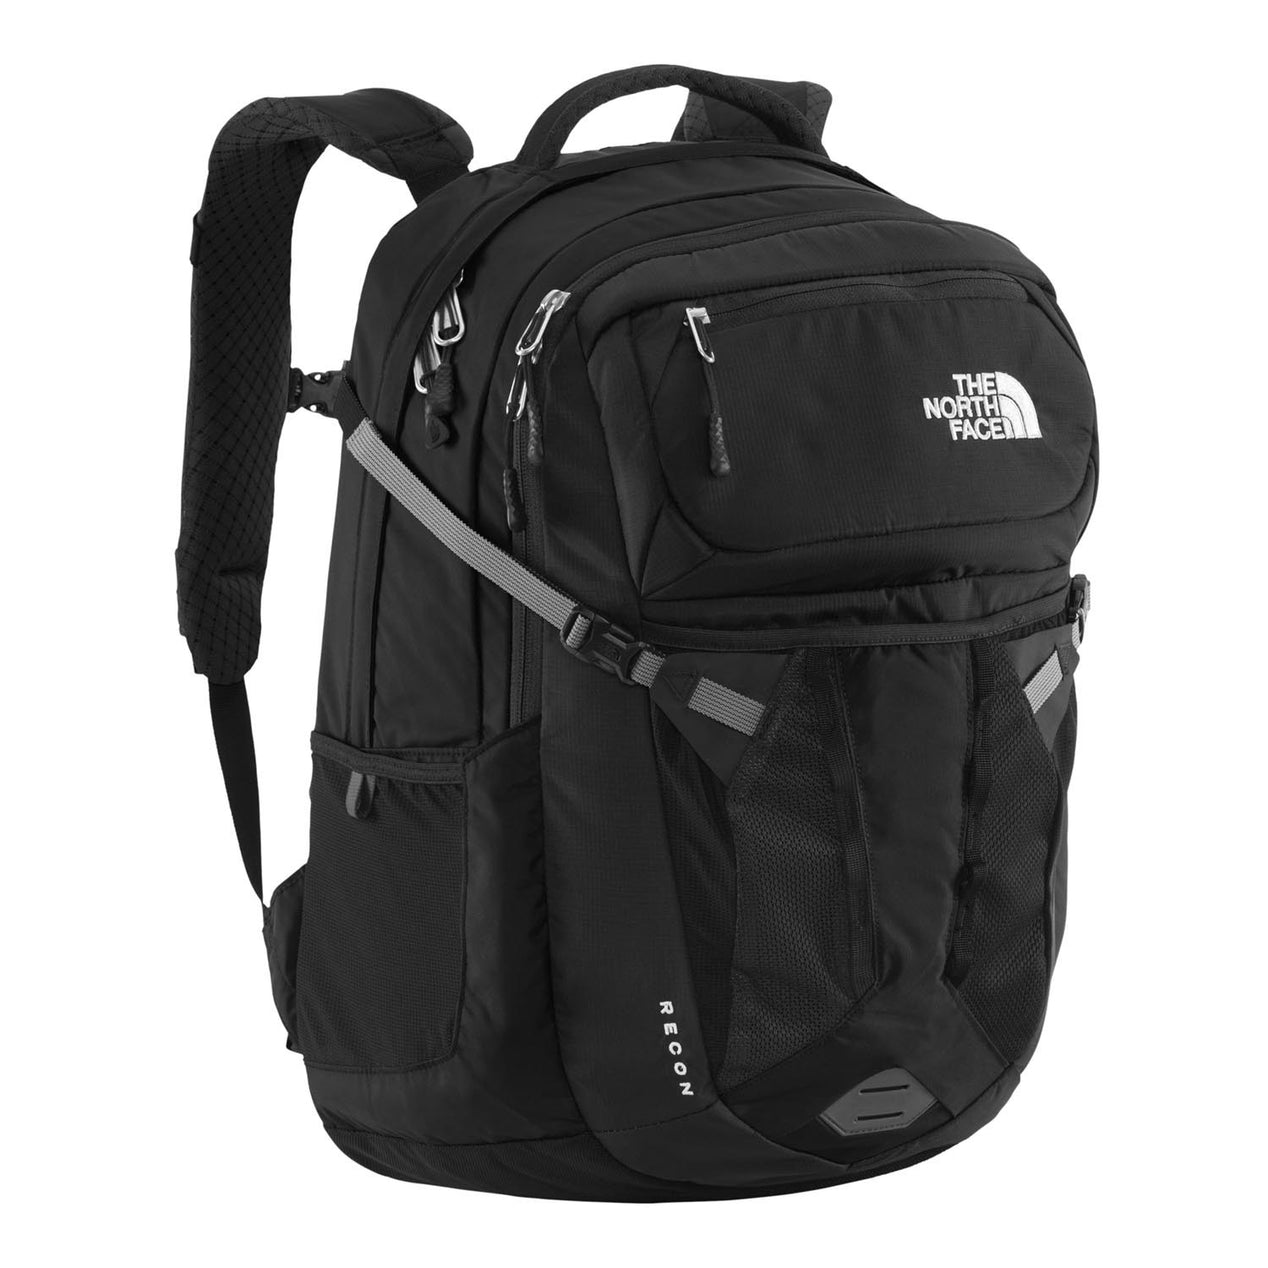 d40cd402c4 The North Face Women's Recon 31l Backpack Past Season | Altitude Sports